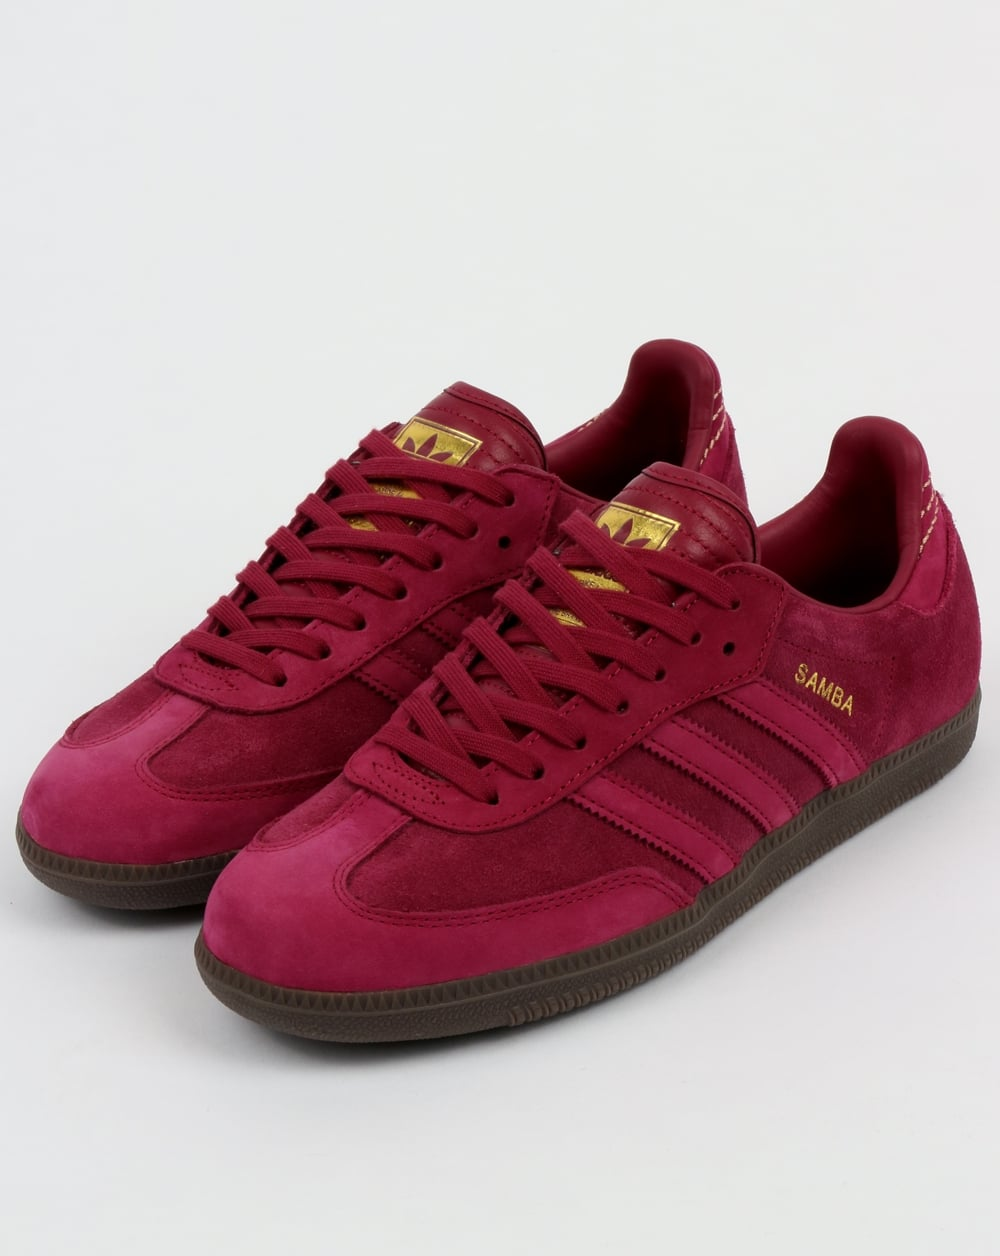 extraer Mayordomo Gran engaño  Adidas Samba Trainers Mystery Ruby,suede,OG,shoes,super,red